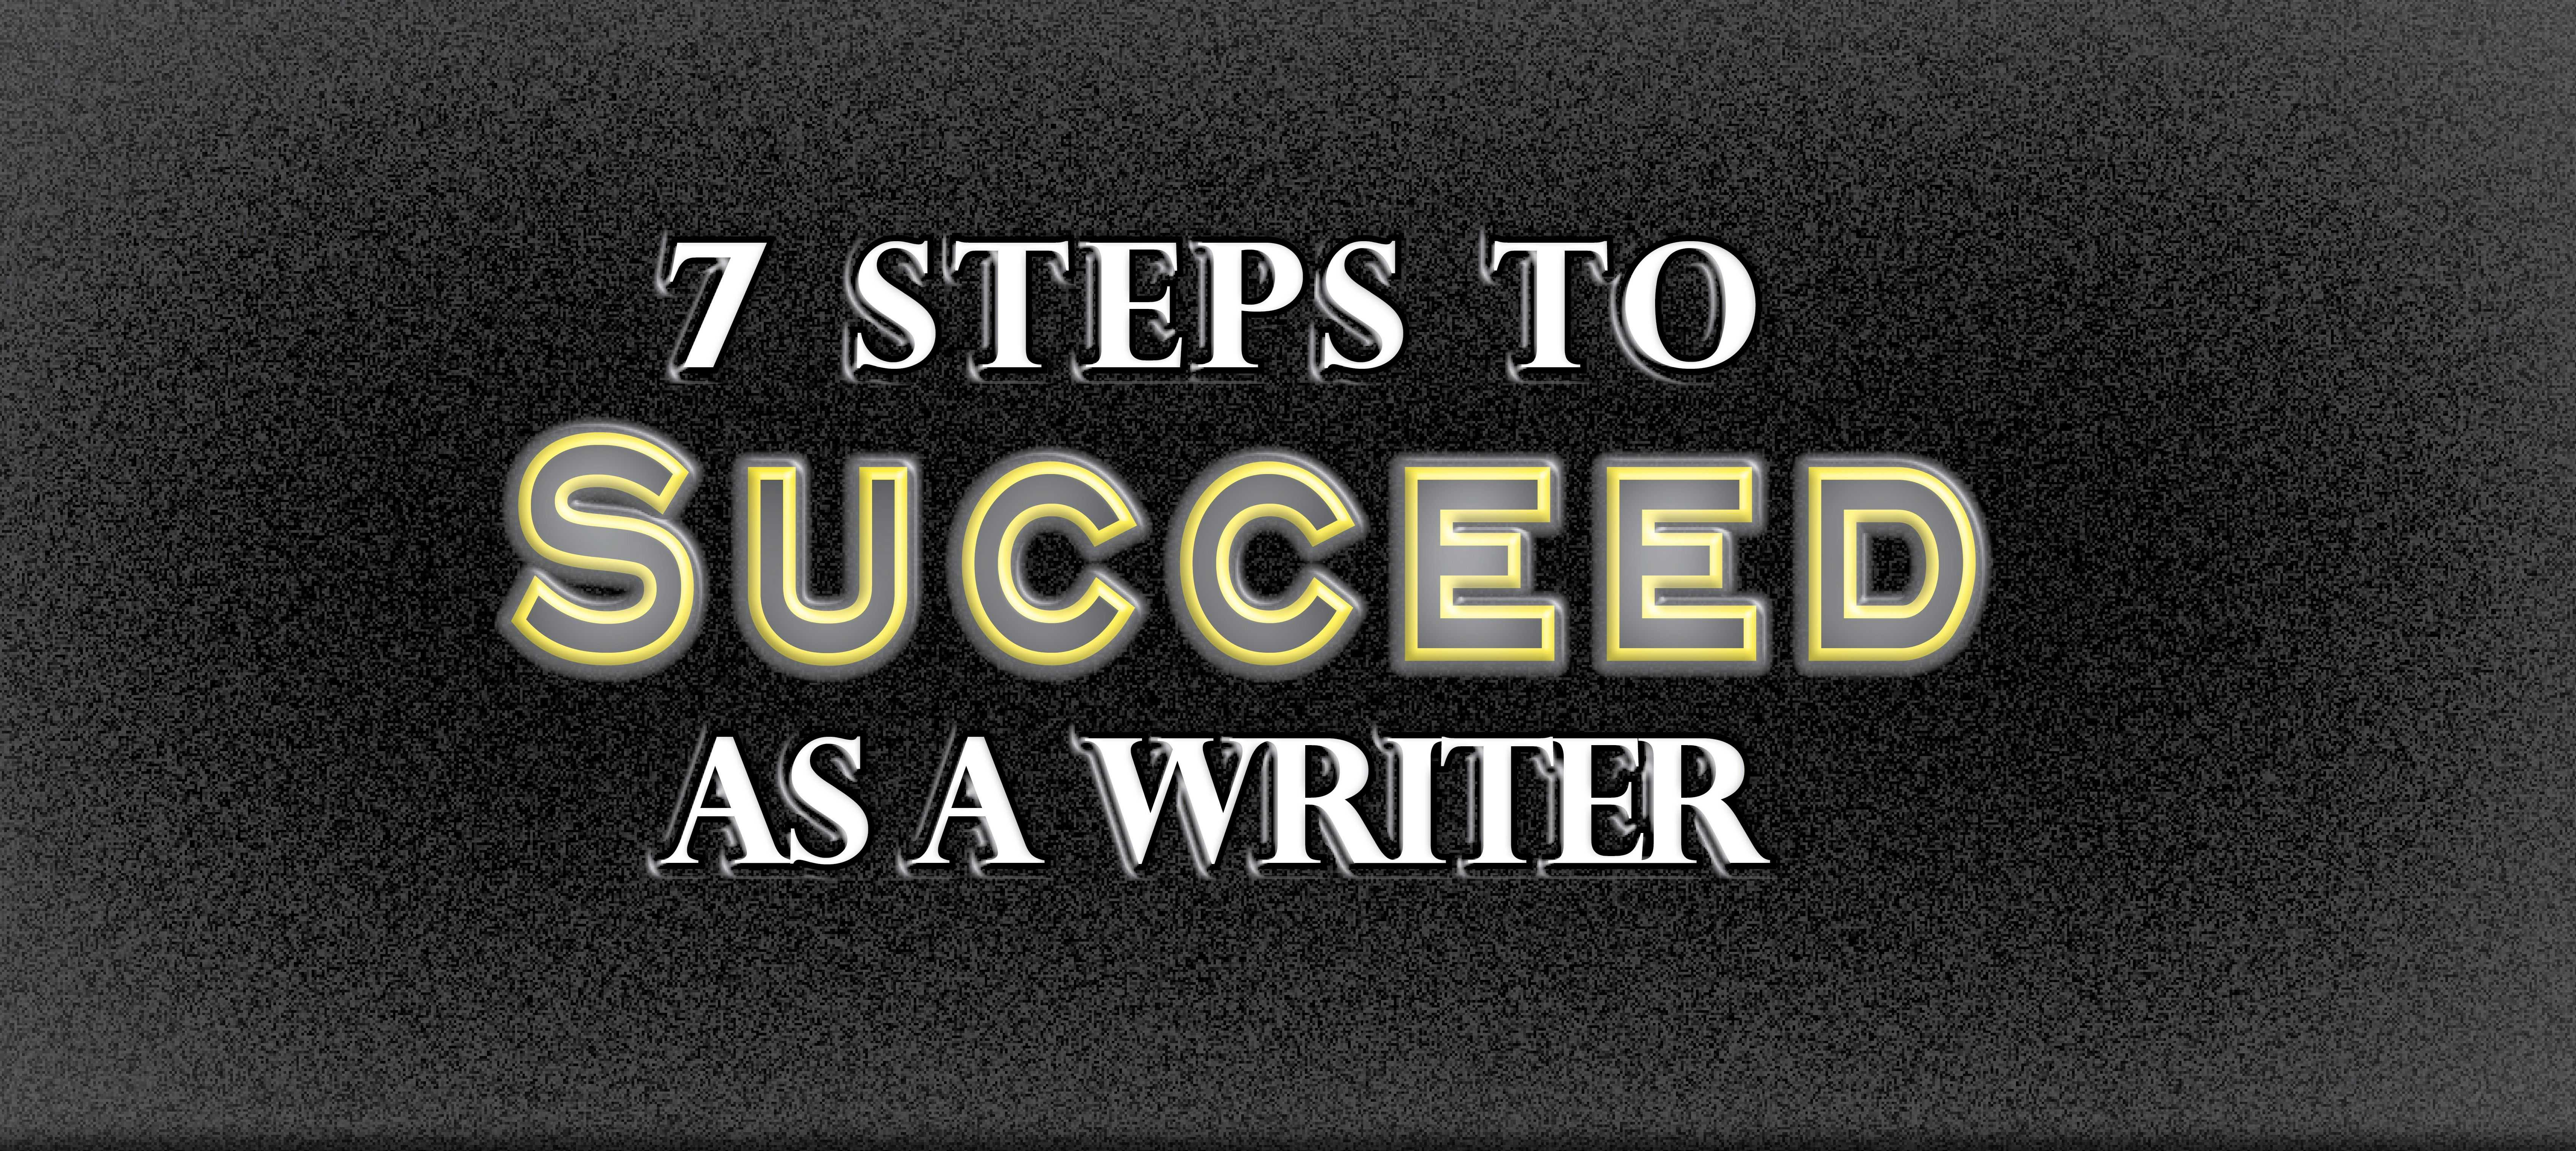 How to Succeed as a Writer